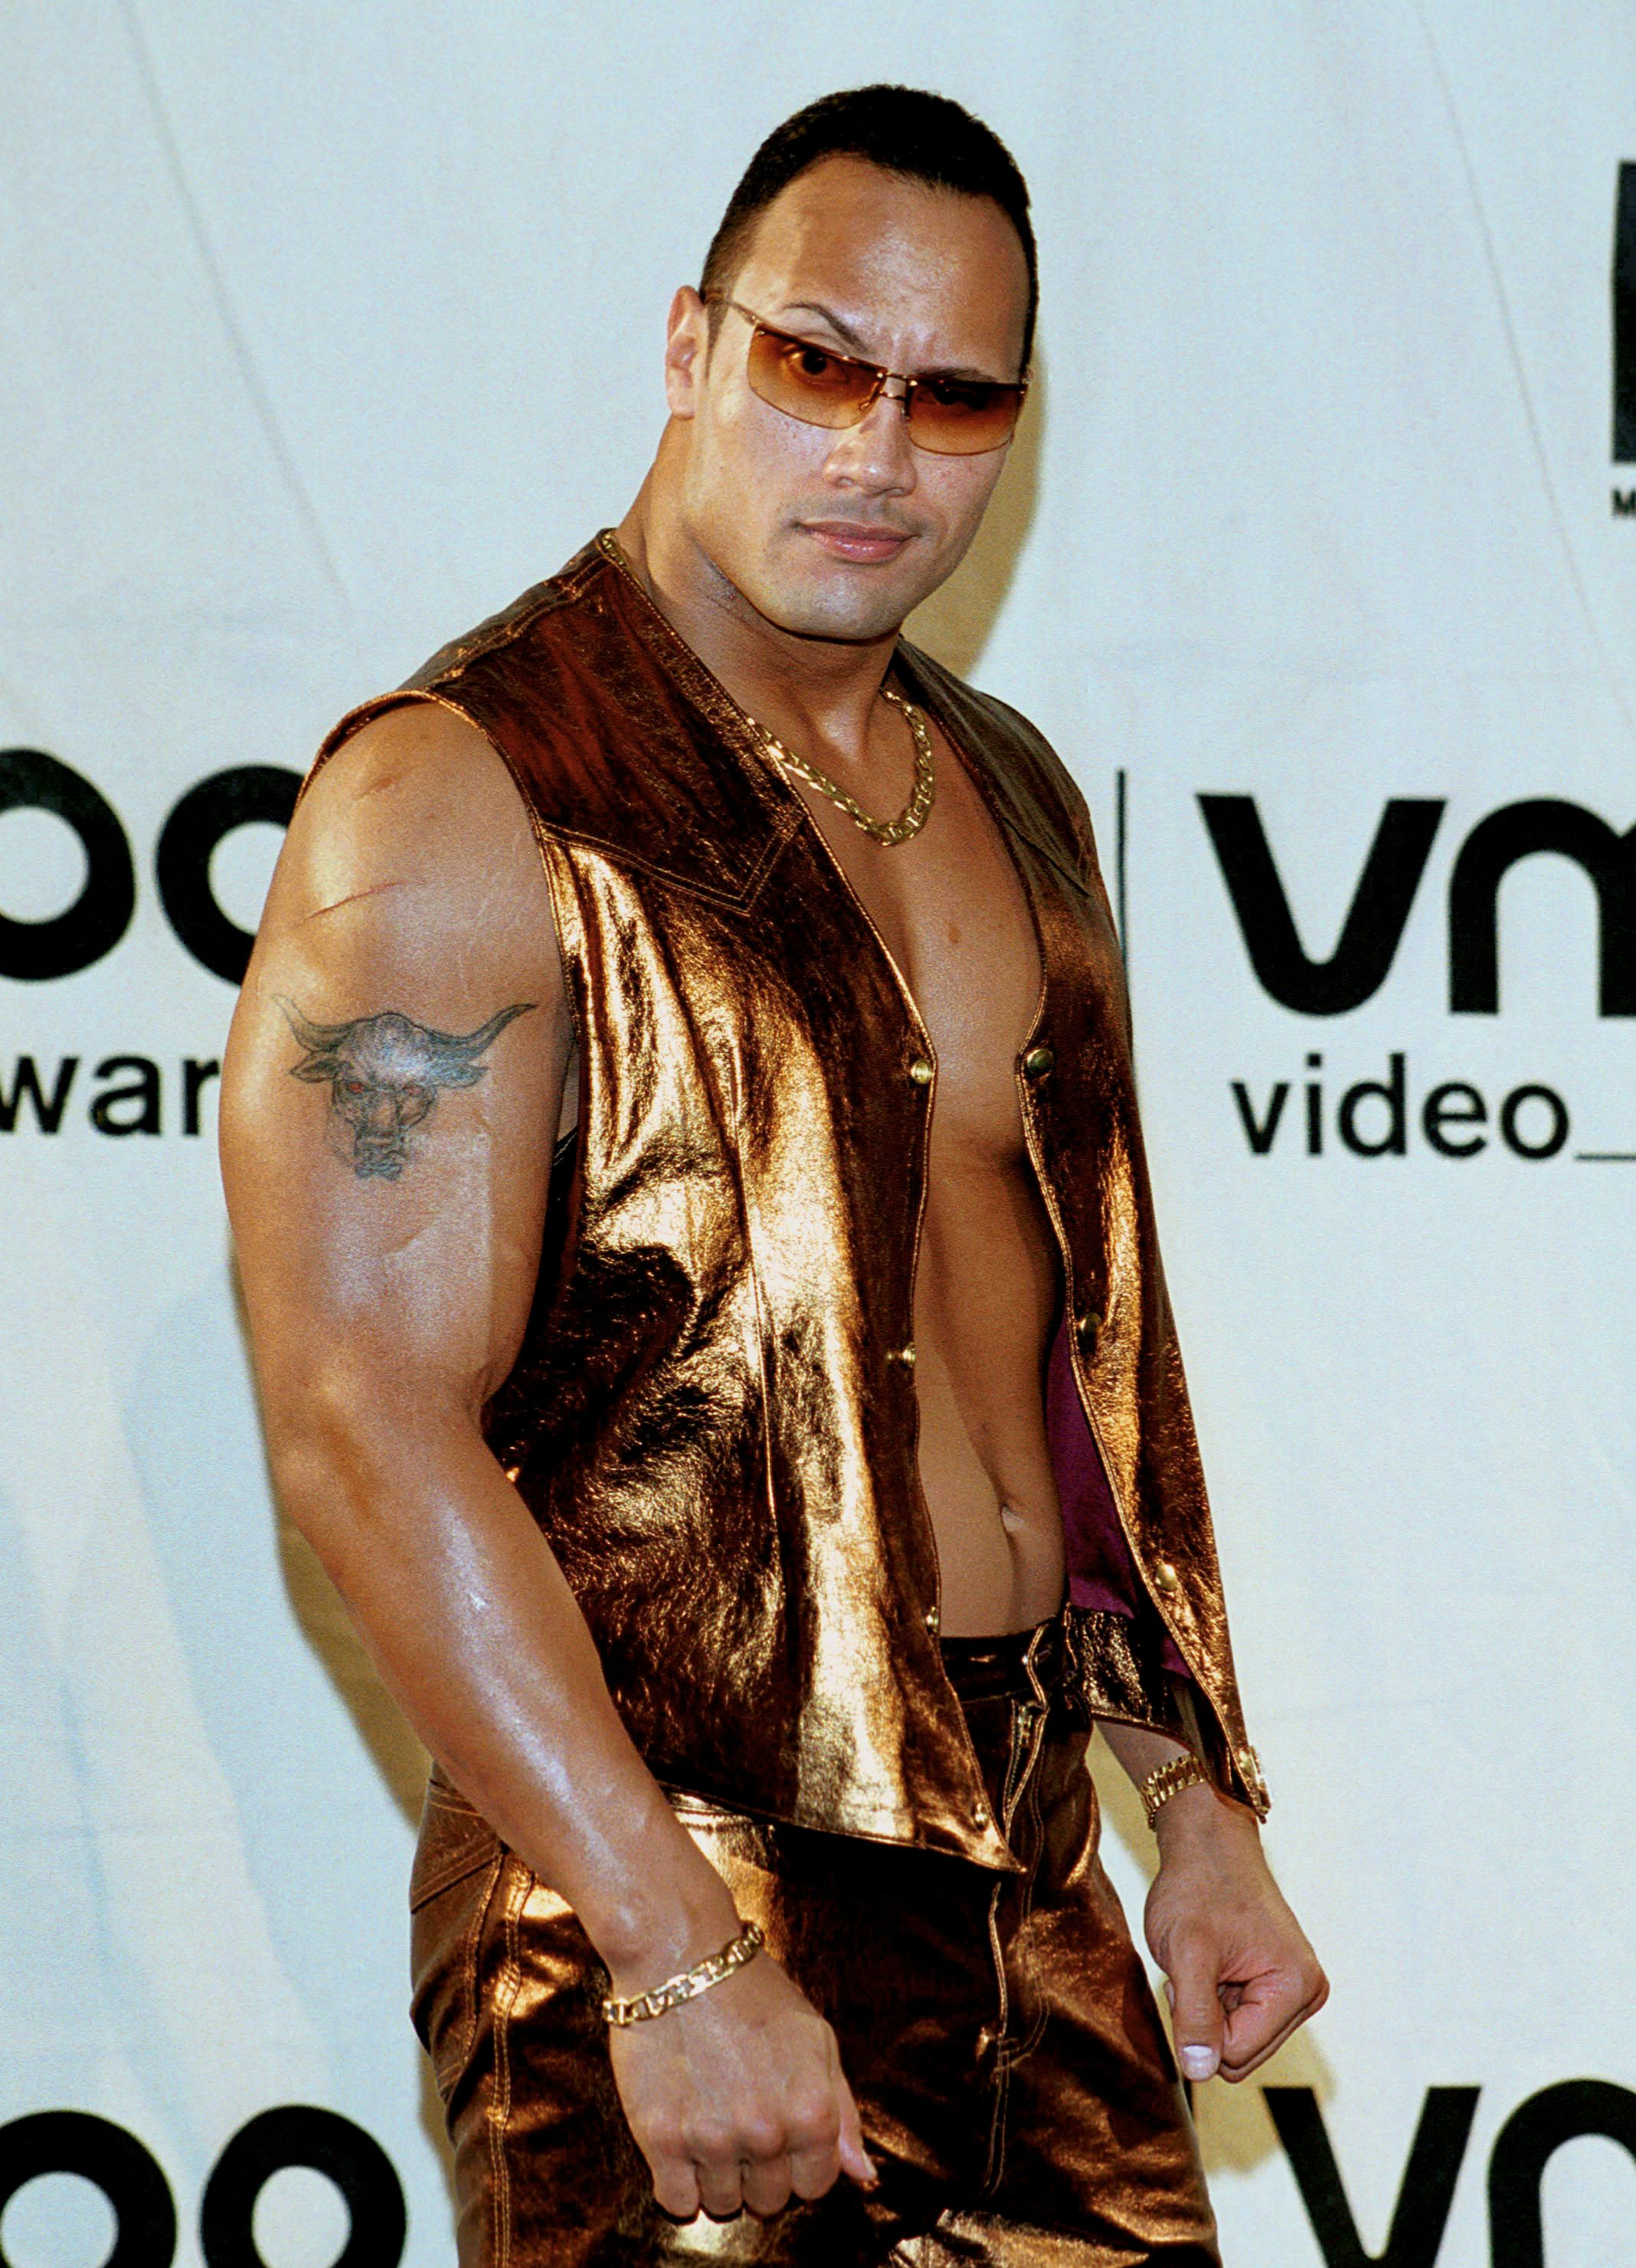 How quickly we forget the past, Dwayne! (Seen here in 2000.)